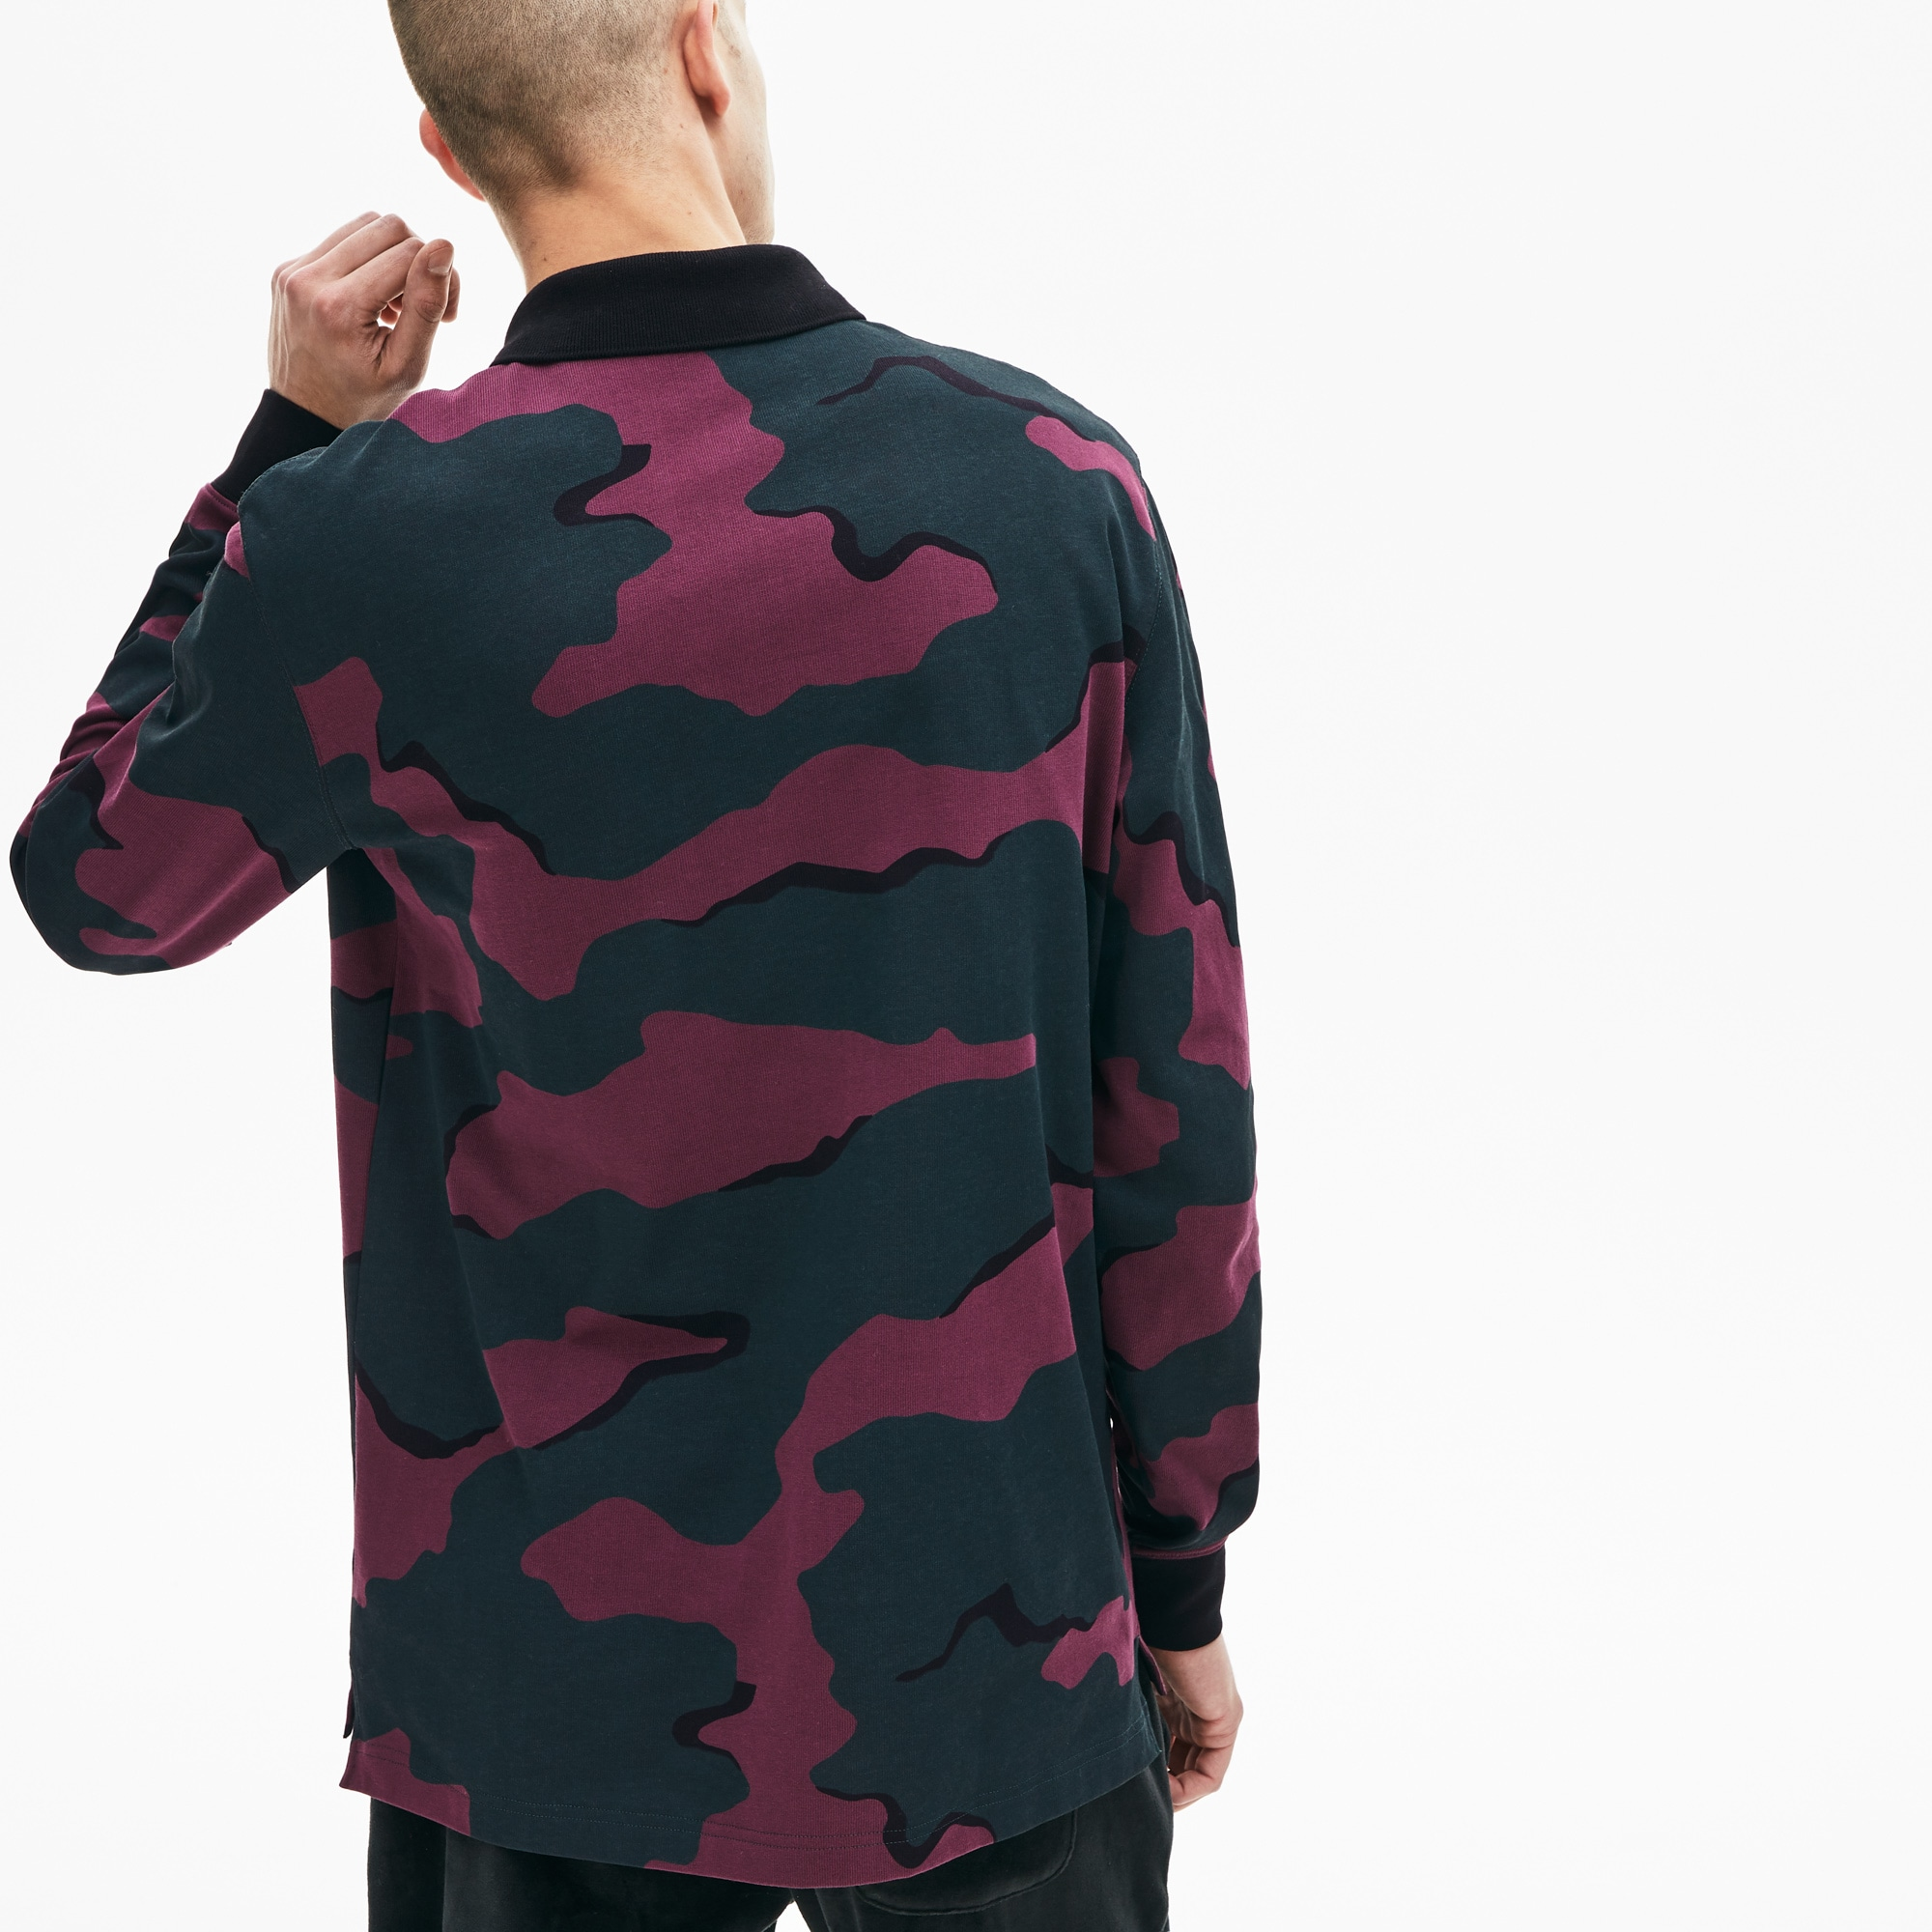 Men's Lacoste LIVE Loose Fit Camouflage Cotton Polo Shirt